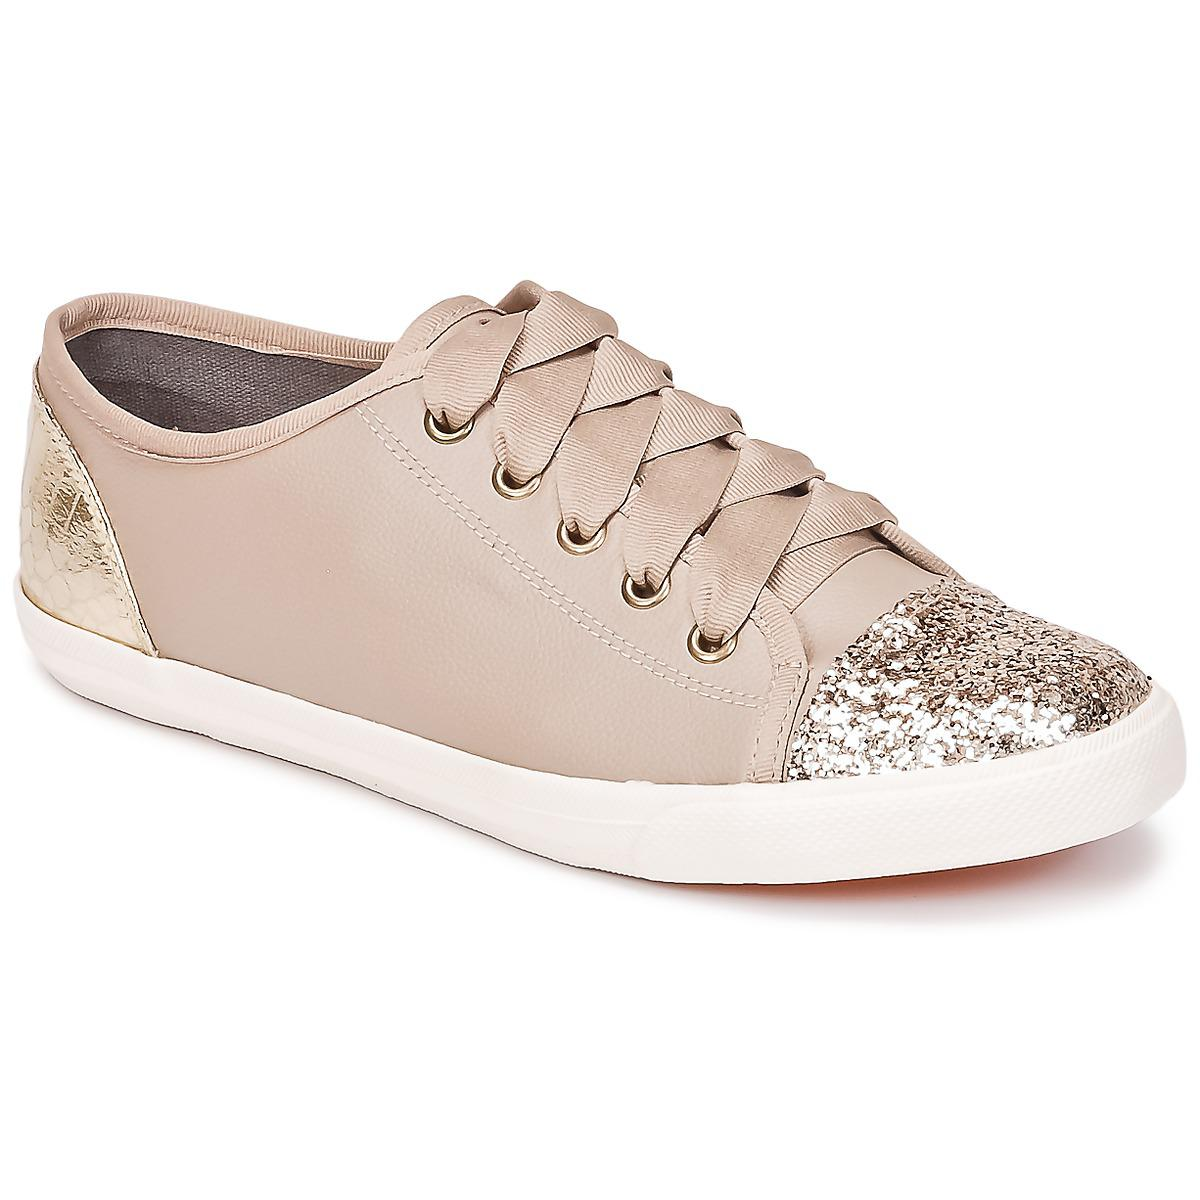 KG by Kurt Geiger Synthetic Lucca-nude Shoes (trainers) in Beige (Natural)